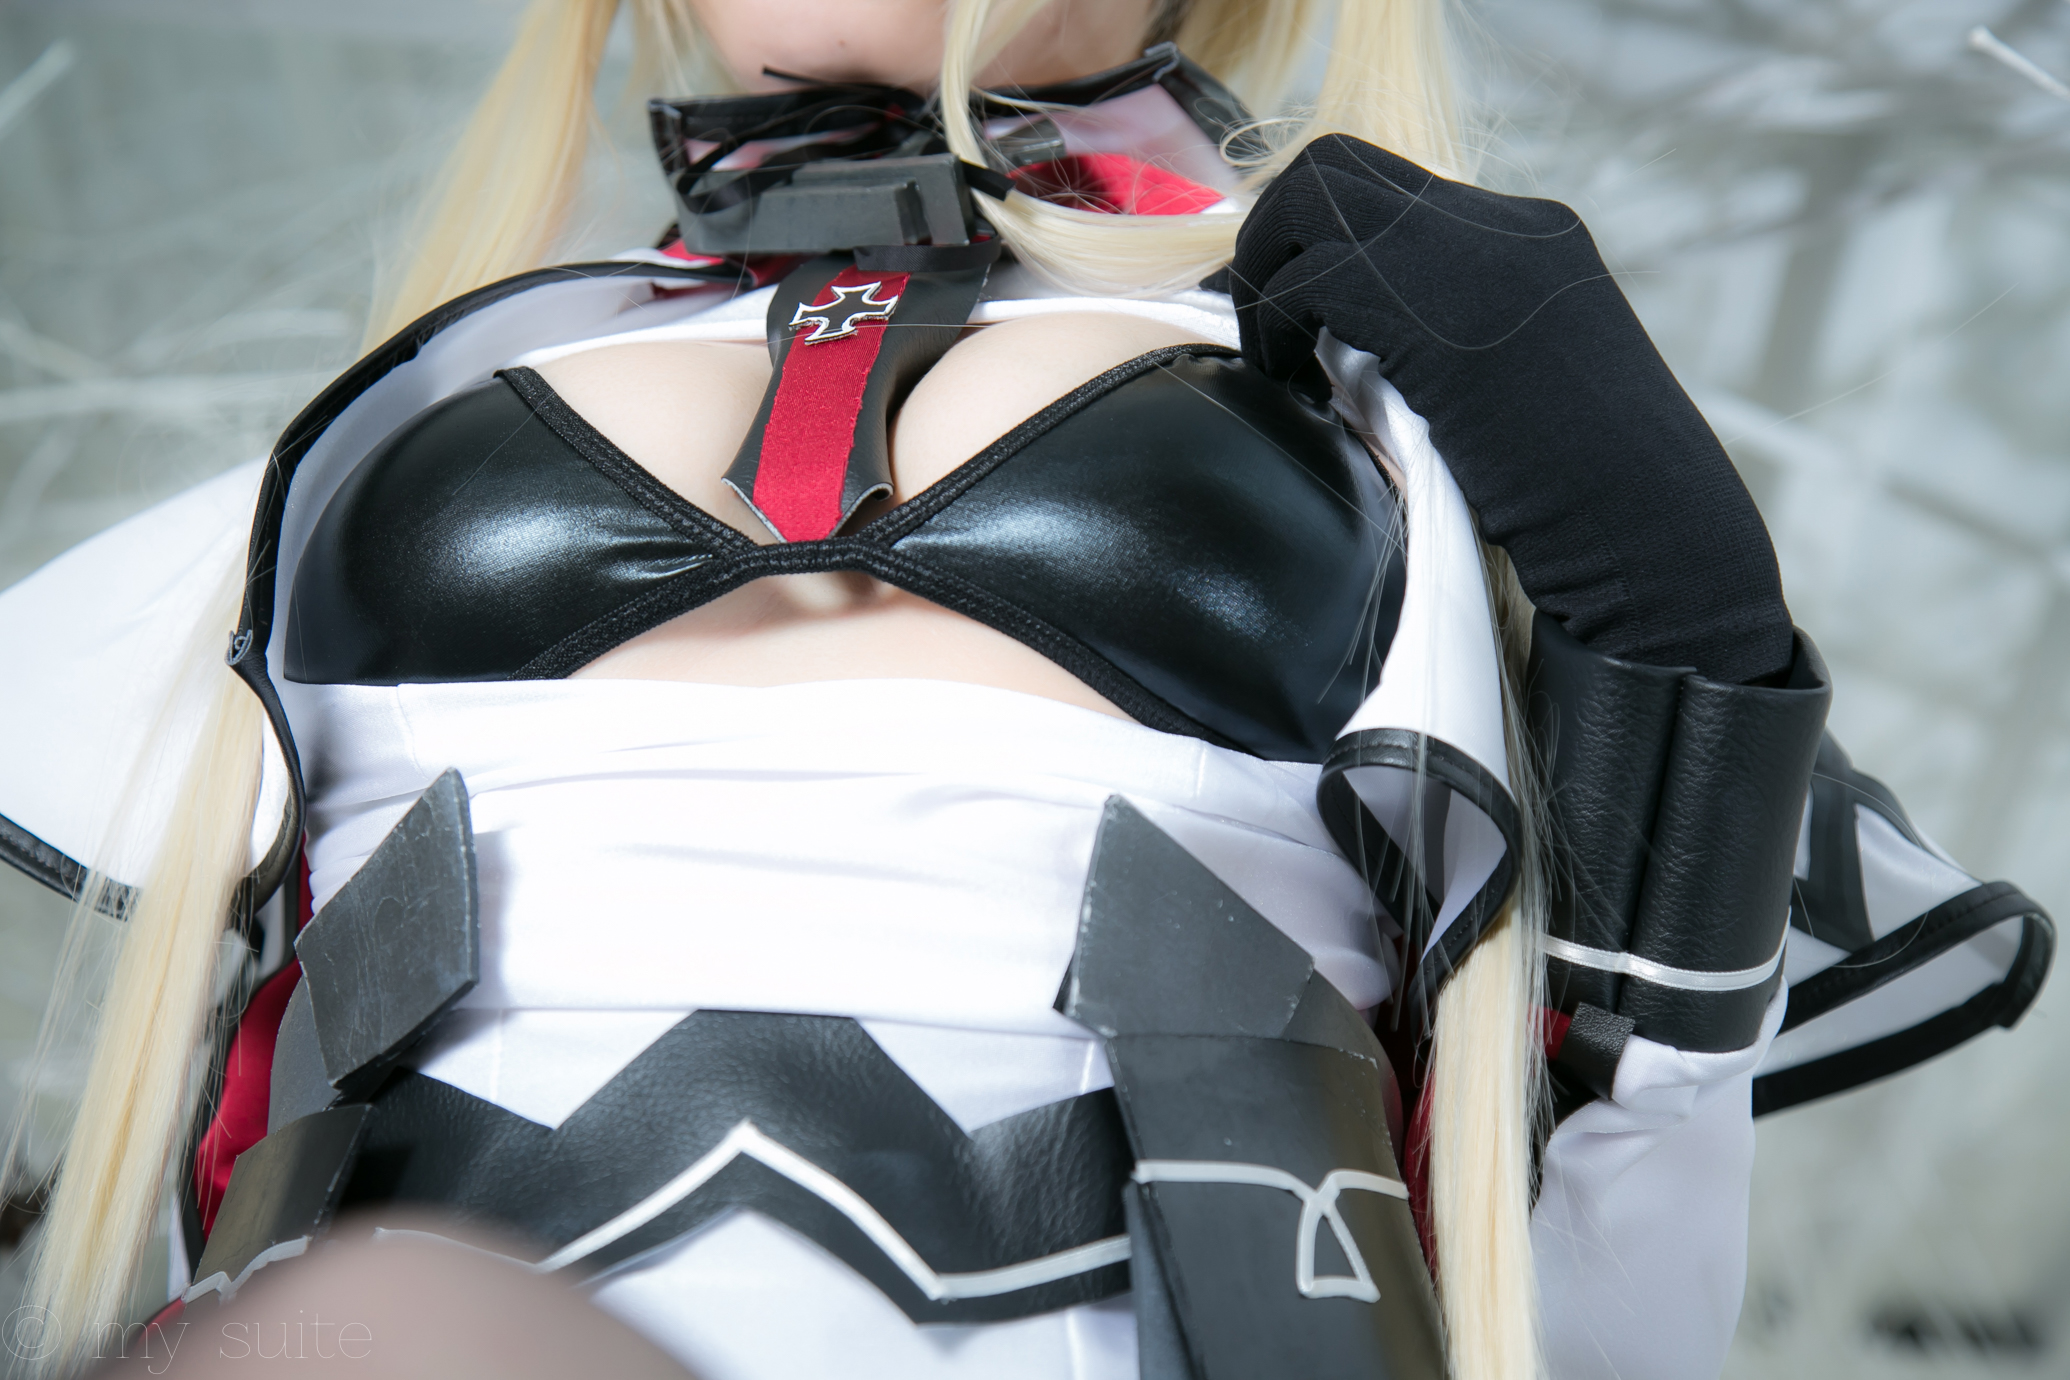 舰队Collection 齐柏林伯爵 COSPLAY Kantai-Collection-Graf-Zeppelin-Cosplay-Shows-Off-the-Goods-68